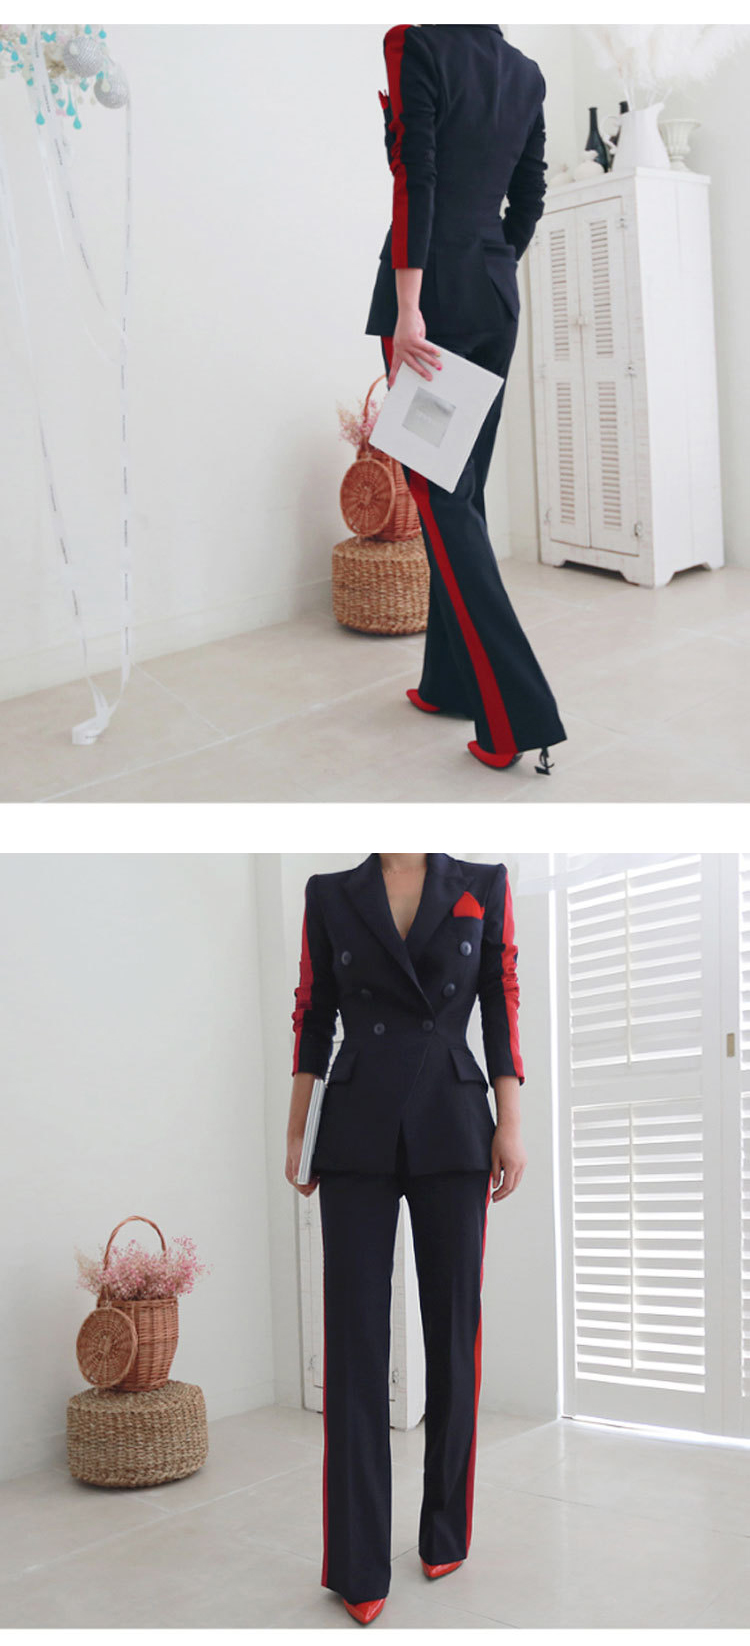 New arrival women high quality temperament fashion wild suit slim pant comfortable thick warm trend outdoor office pant suits 6